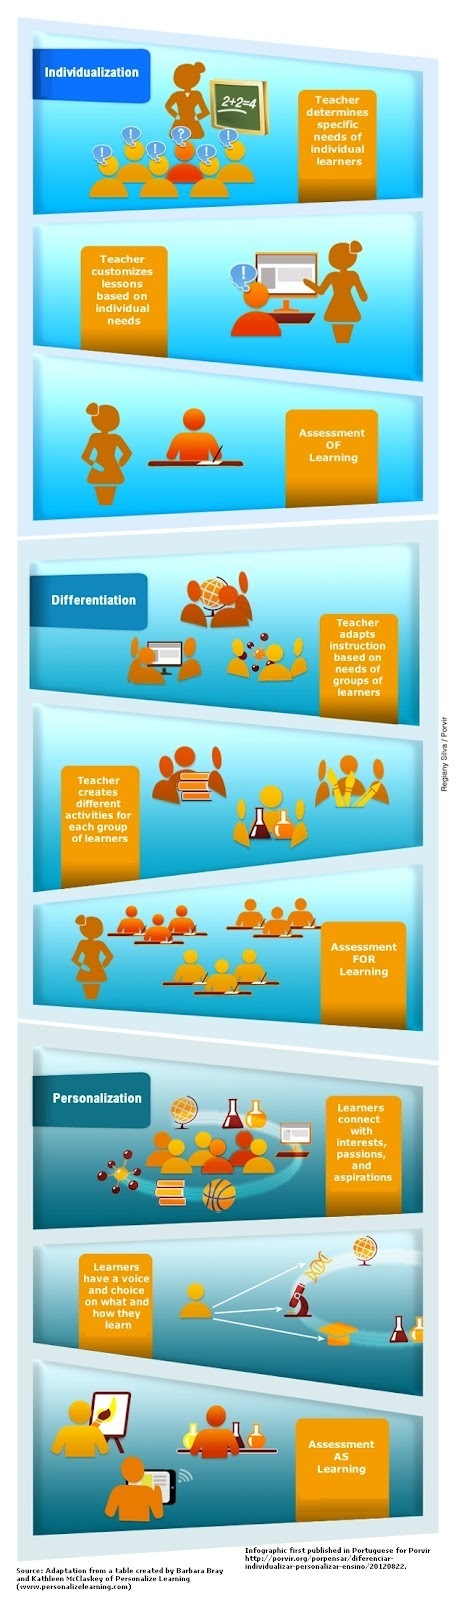 Infographic: Personalization vs Individualization vs Differentiation | college and career ready | Scoop.it